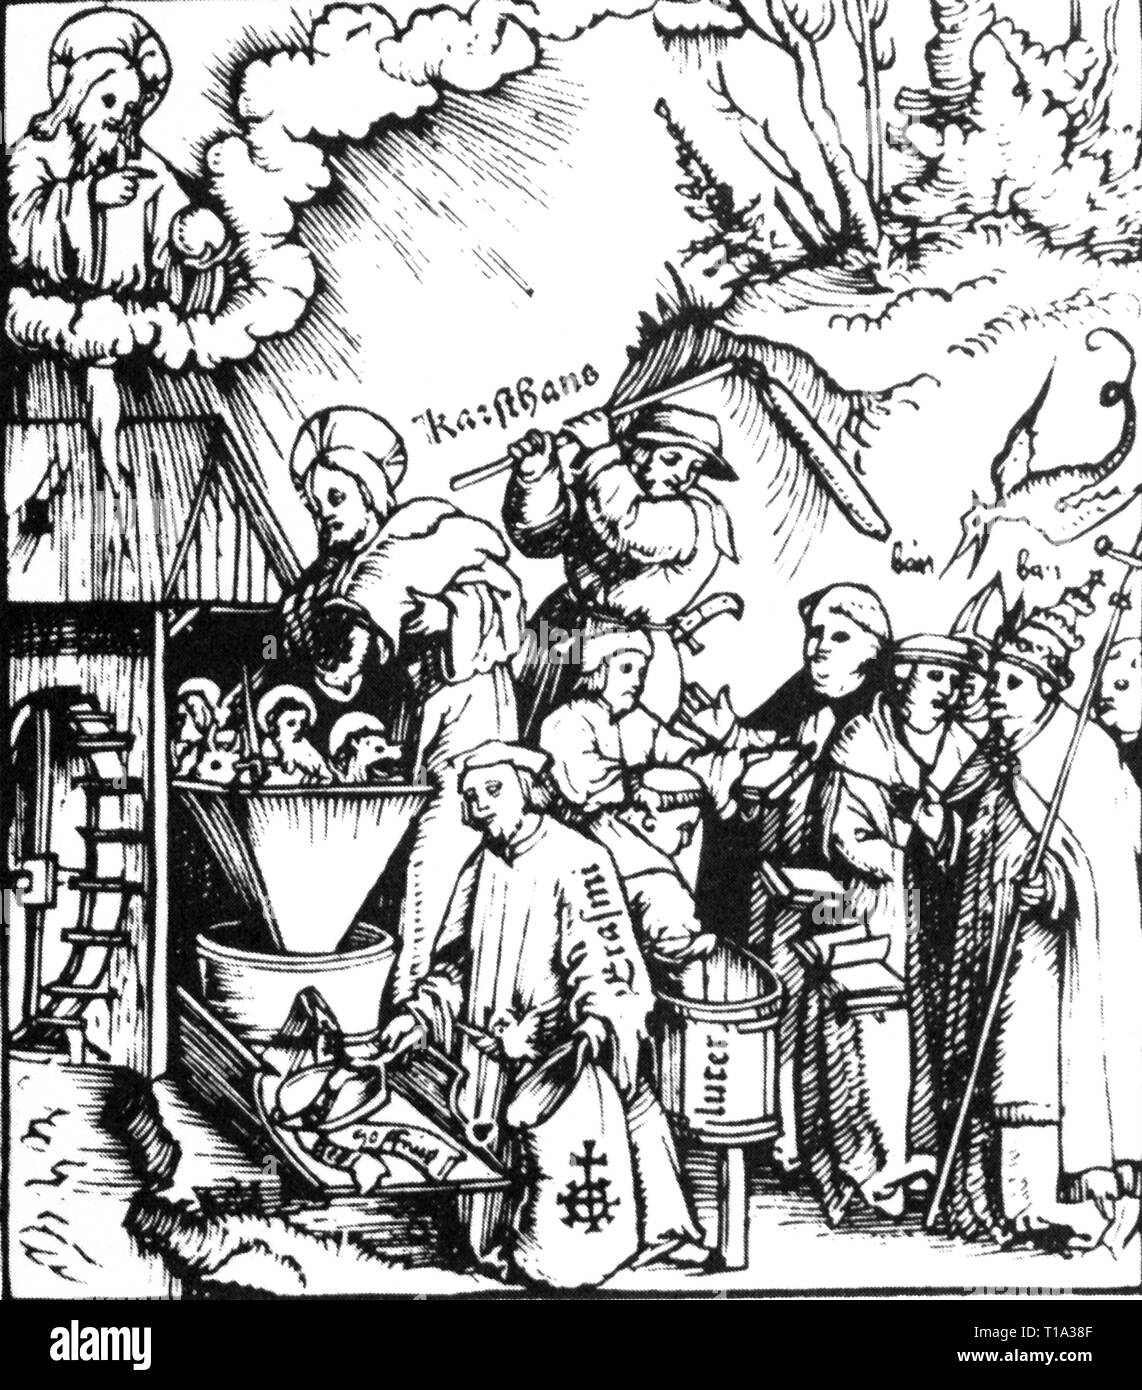 religion, Reformation / selling of indulgences, 'The Divine Mill', woodcut, for pamphlet of Martin Seger (circa 1470 - 1534) / Hans Fuessli (1477 - 1538), print: Christoph Froschauer the Elder, Zurich, 1521, Additional-Rights-Clearance-Info-Not-Available - Stock Image